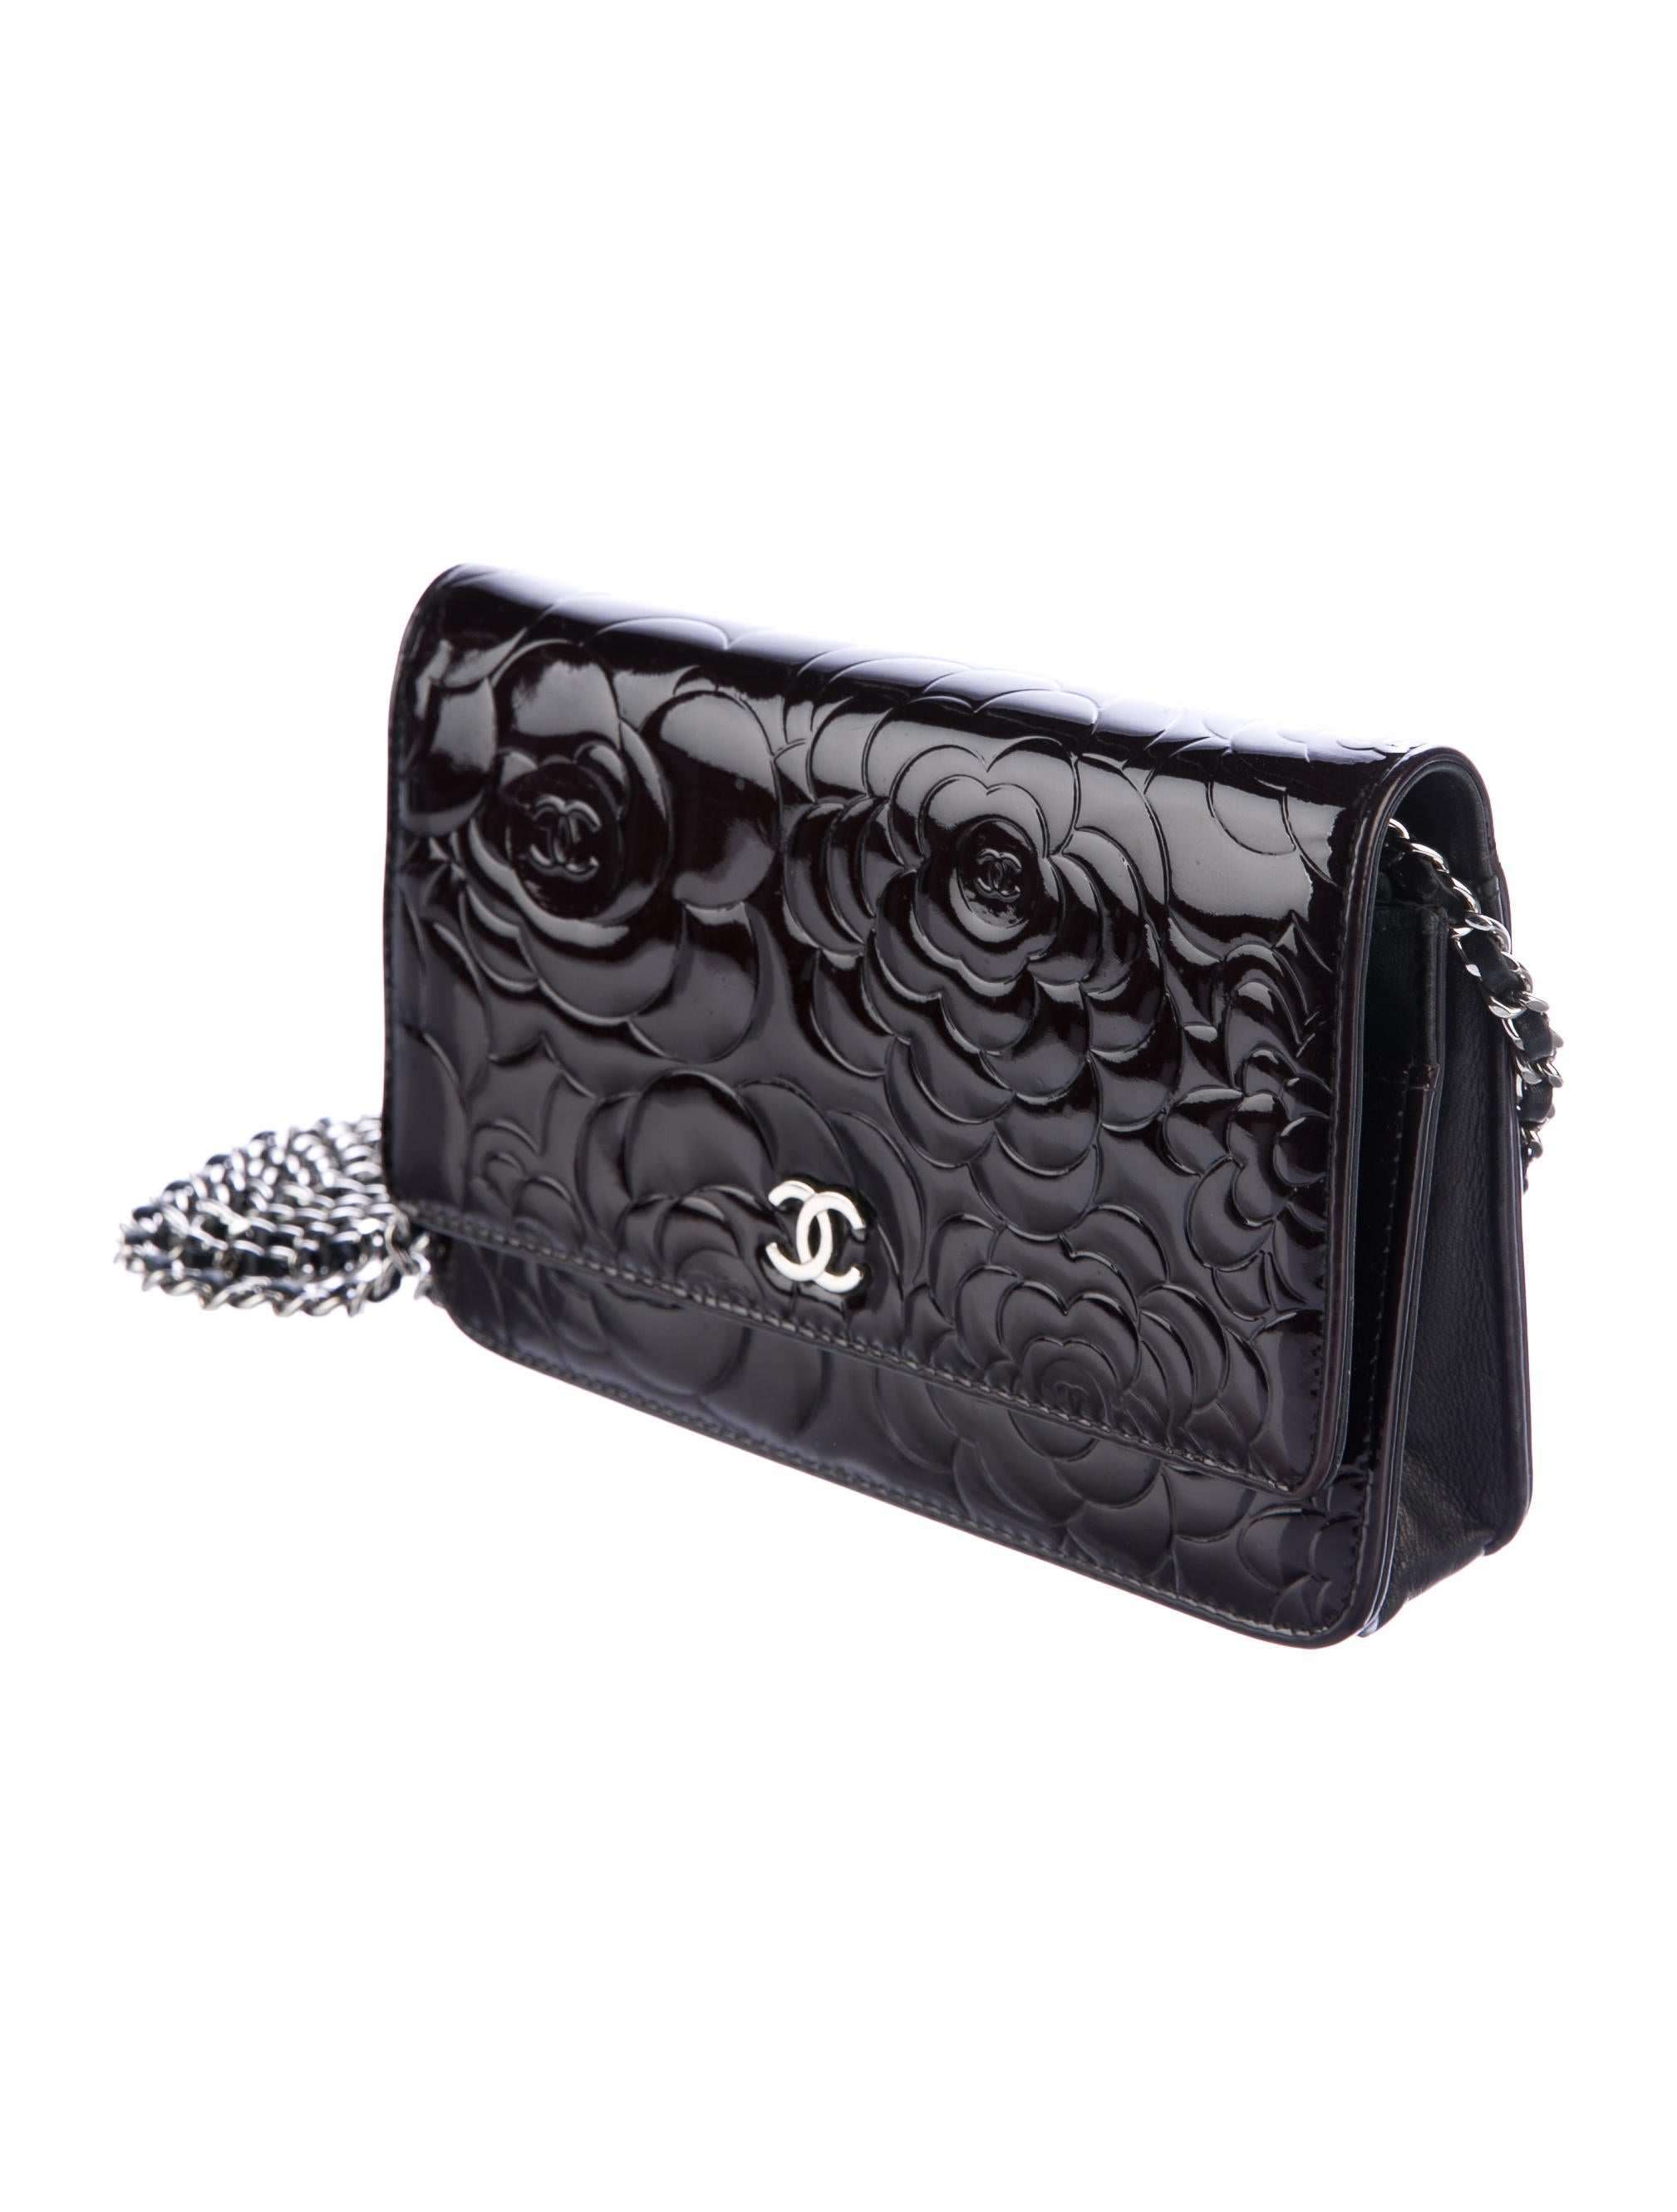 a6740d6fba1dfa Chanel Camellia Wallet On Chain | Stanford Center for Opportunity ...